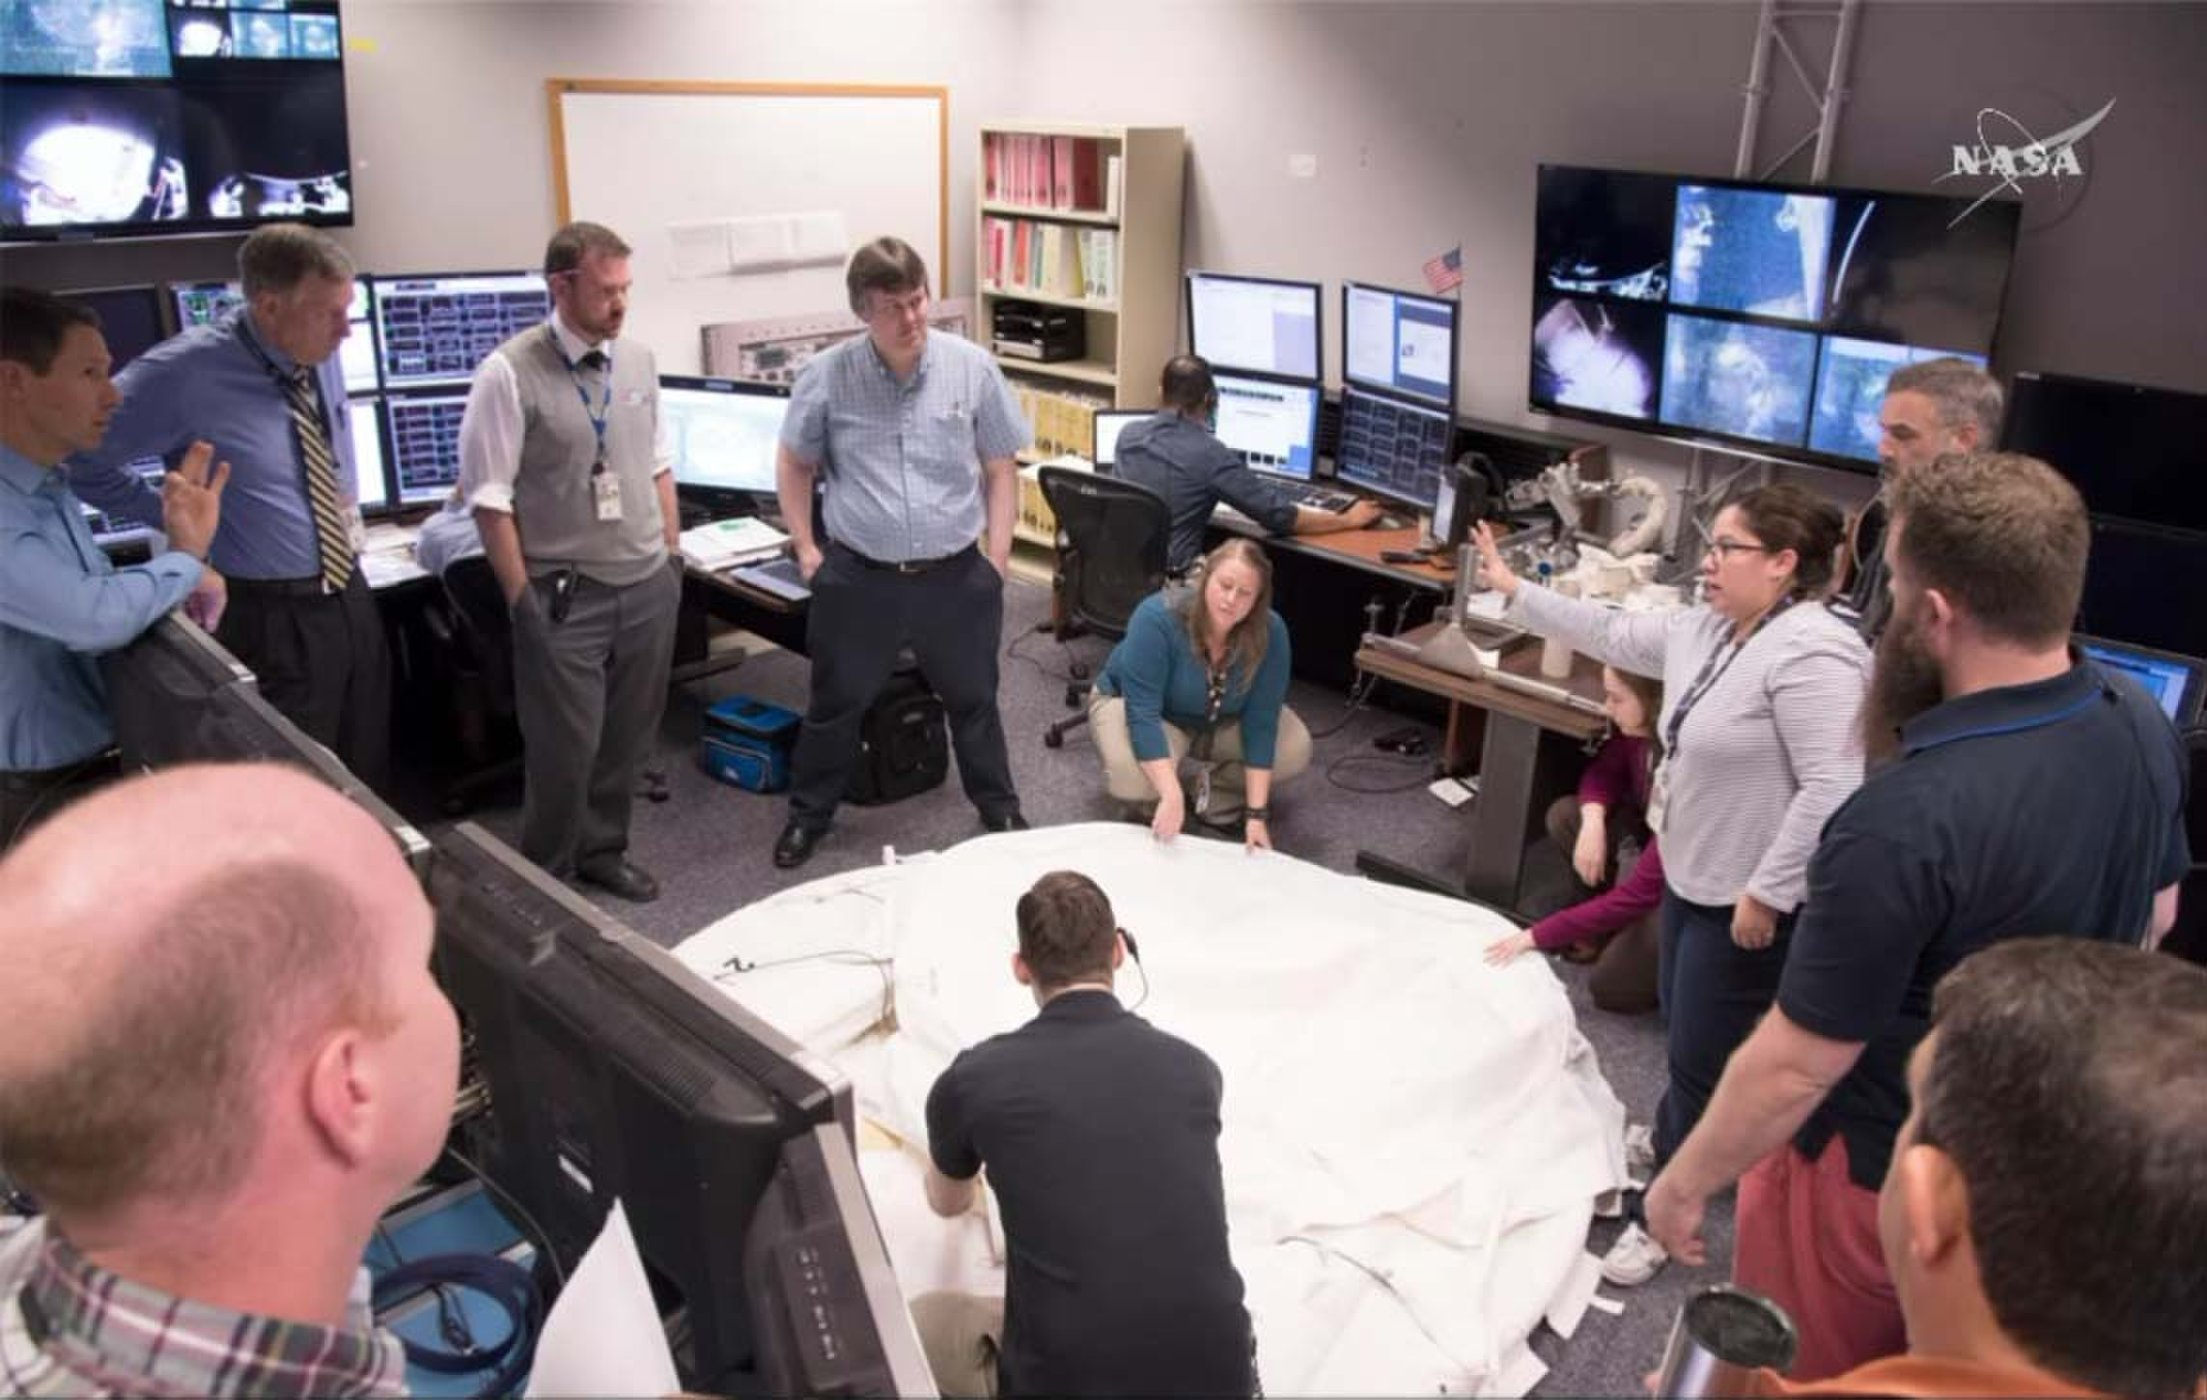 A shot from inside Multipurpose Support Room as the team confirmed that the PMA cover could be successfully deployed.